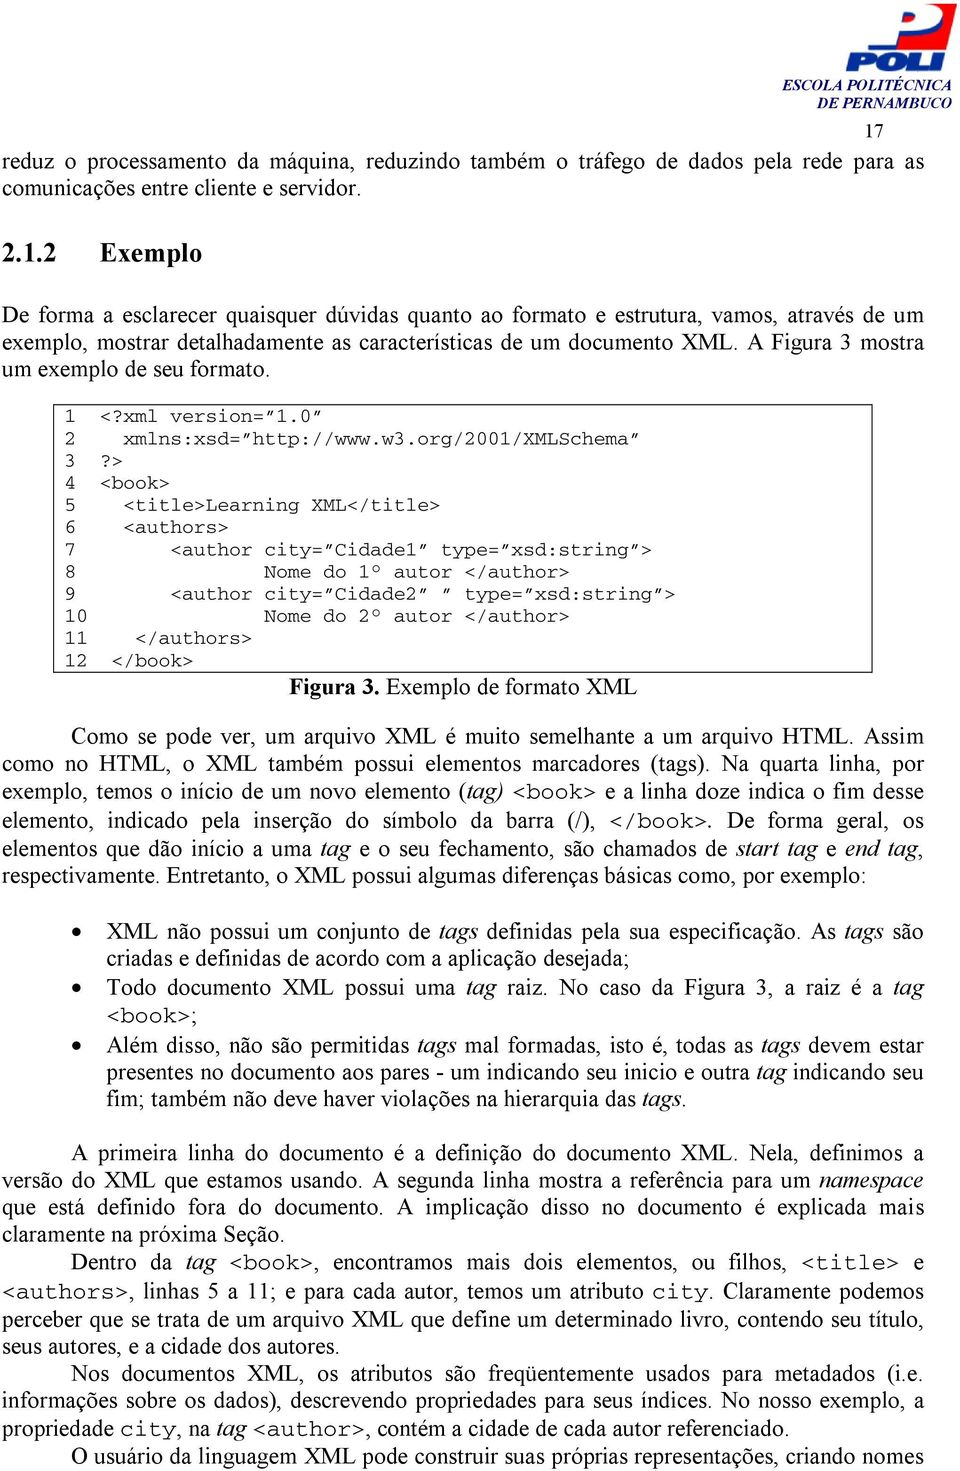 > 4 <book> 5 <title>learning XML</title> 6 <authors> 7 <author city= Cidade1 type= xsd:string > 8 Nome do 1 autor </author> 9 <author city= Cidade2 type= xsd:string > 10 Nome do 2 autor </author> 11